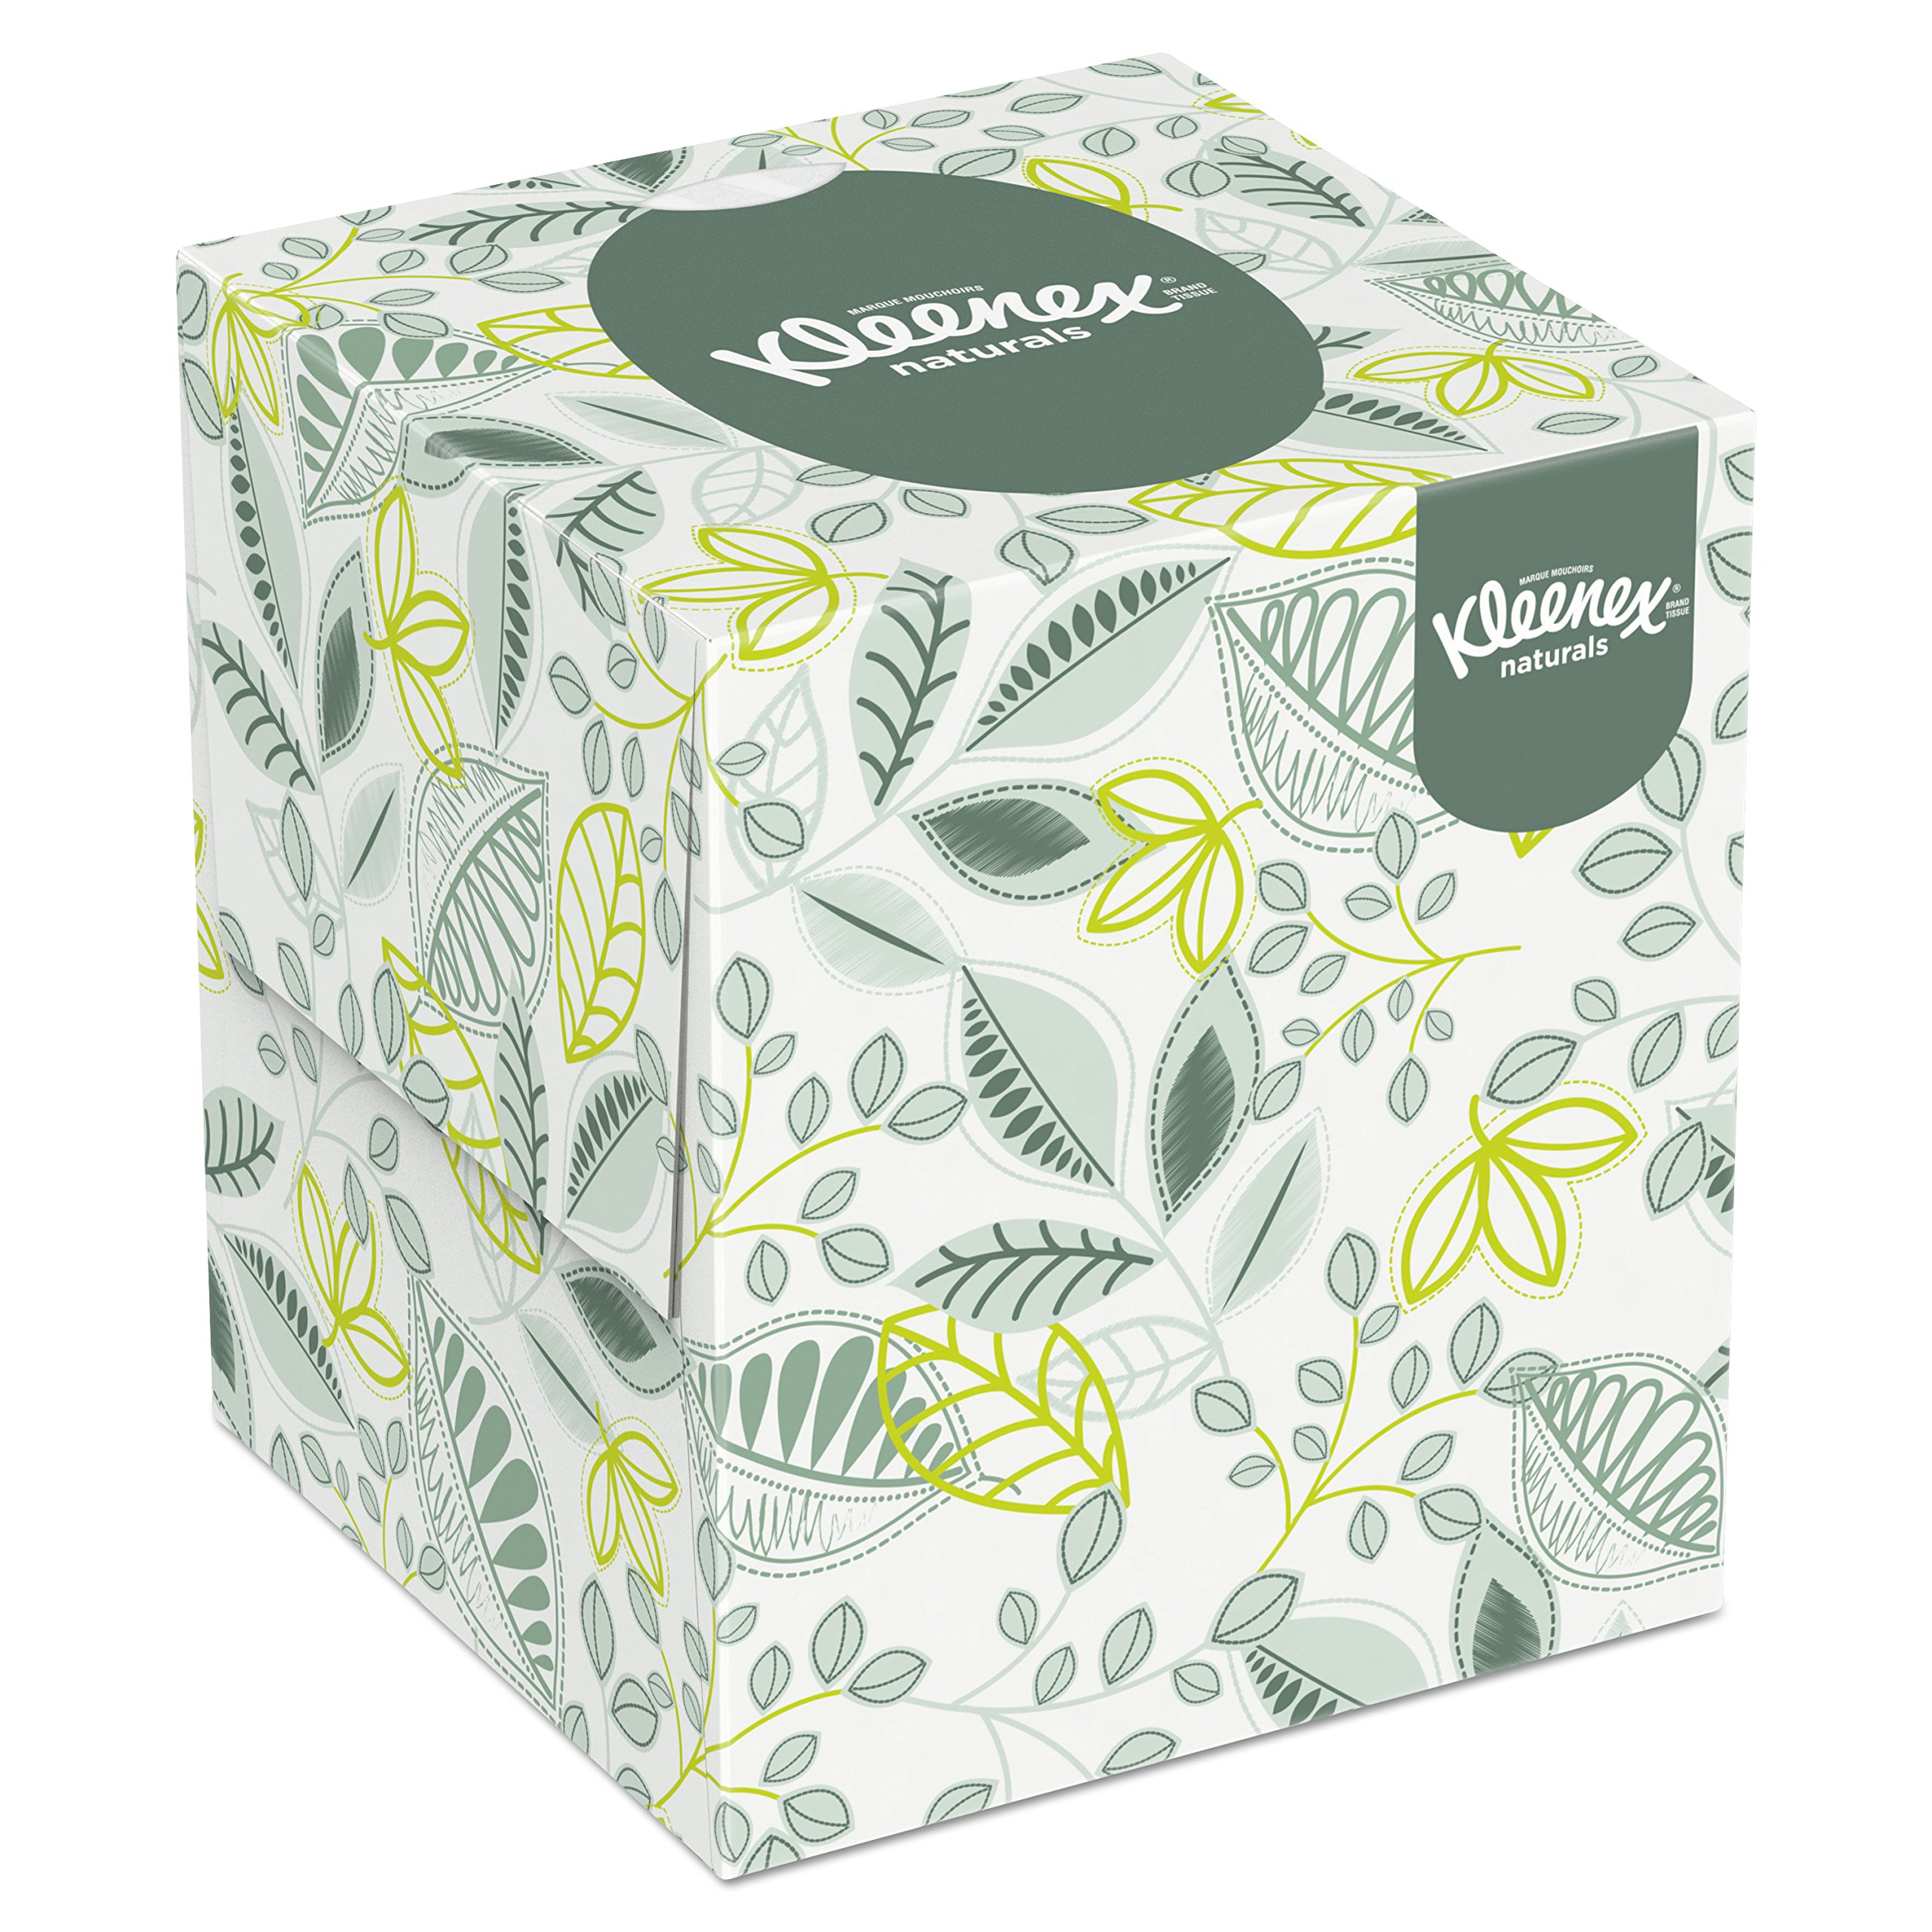 Kleenex Professional Naturals Boutique Facial Tissue Cube for Business (21272), Upright Face Tissue Box, 2-PLY, 6 Bundles/Case, 6 Boxes/Bundle, 36 Boxes/Case